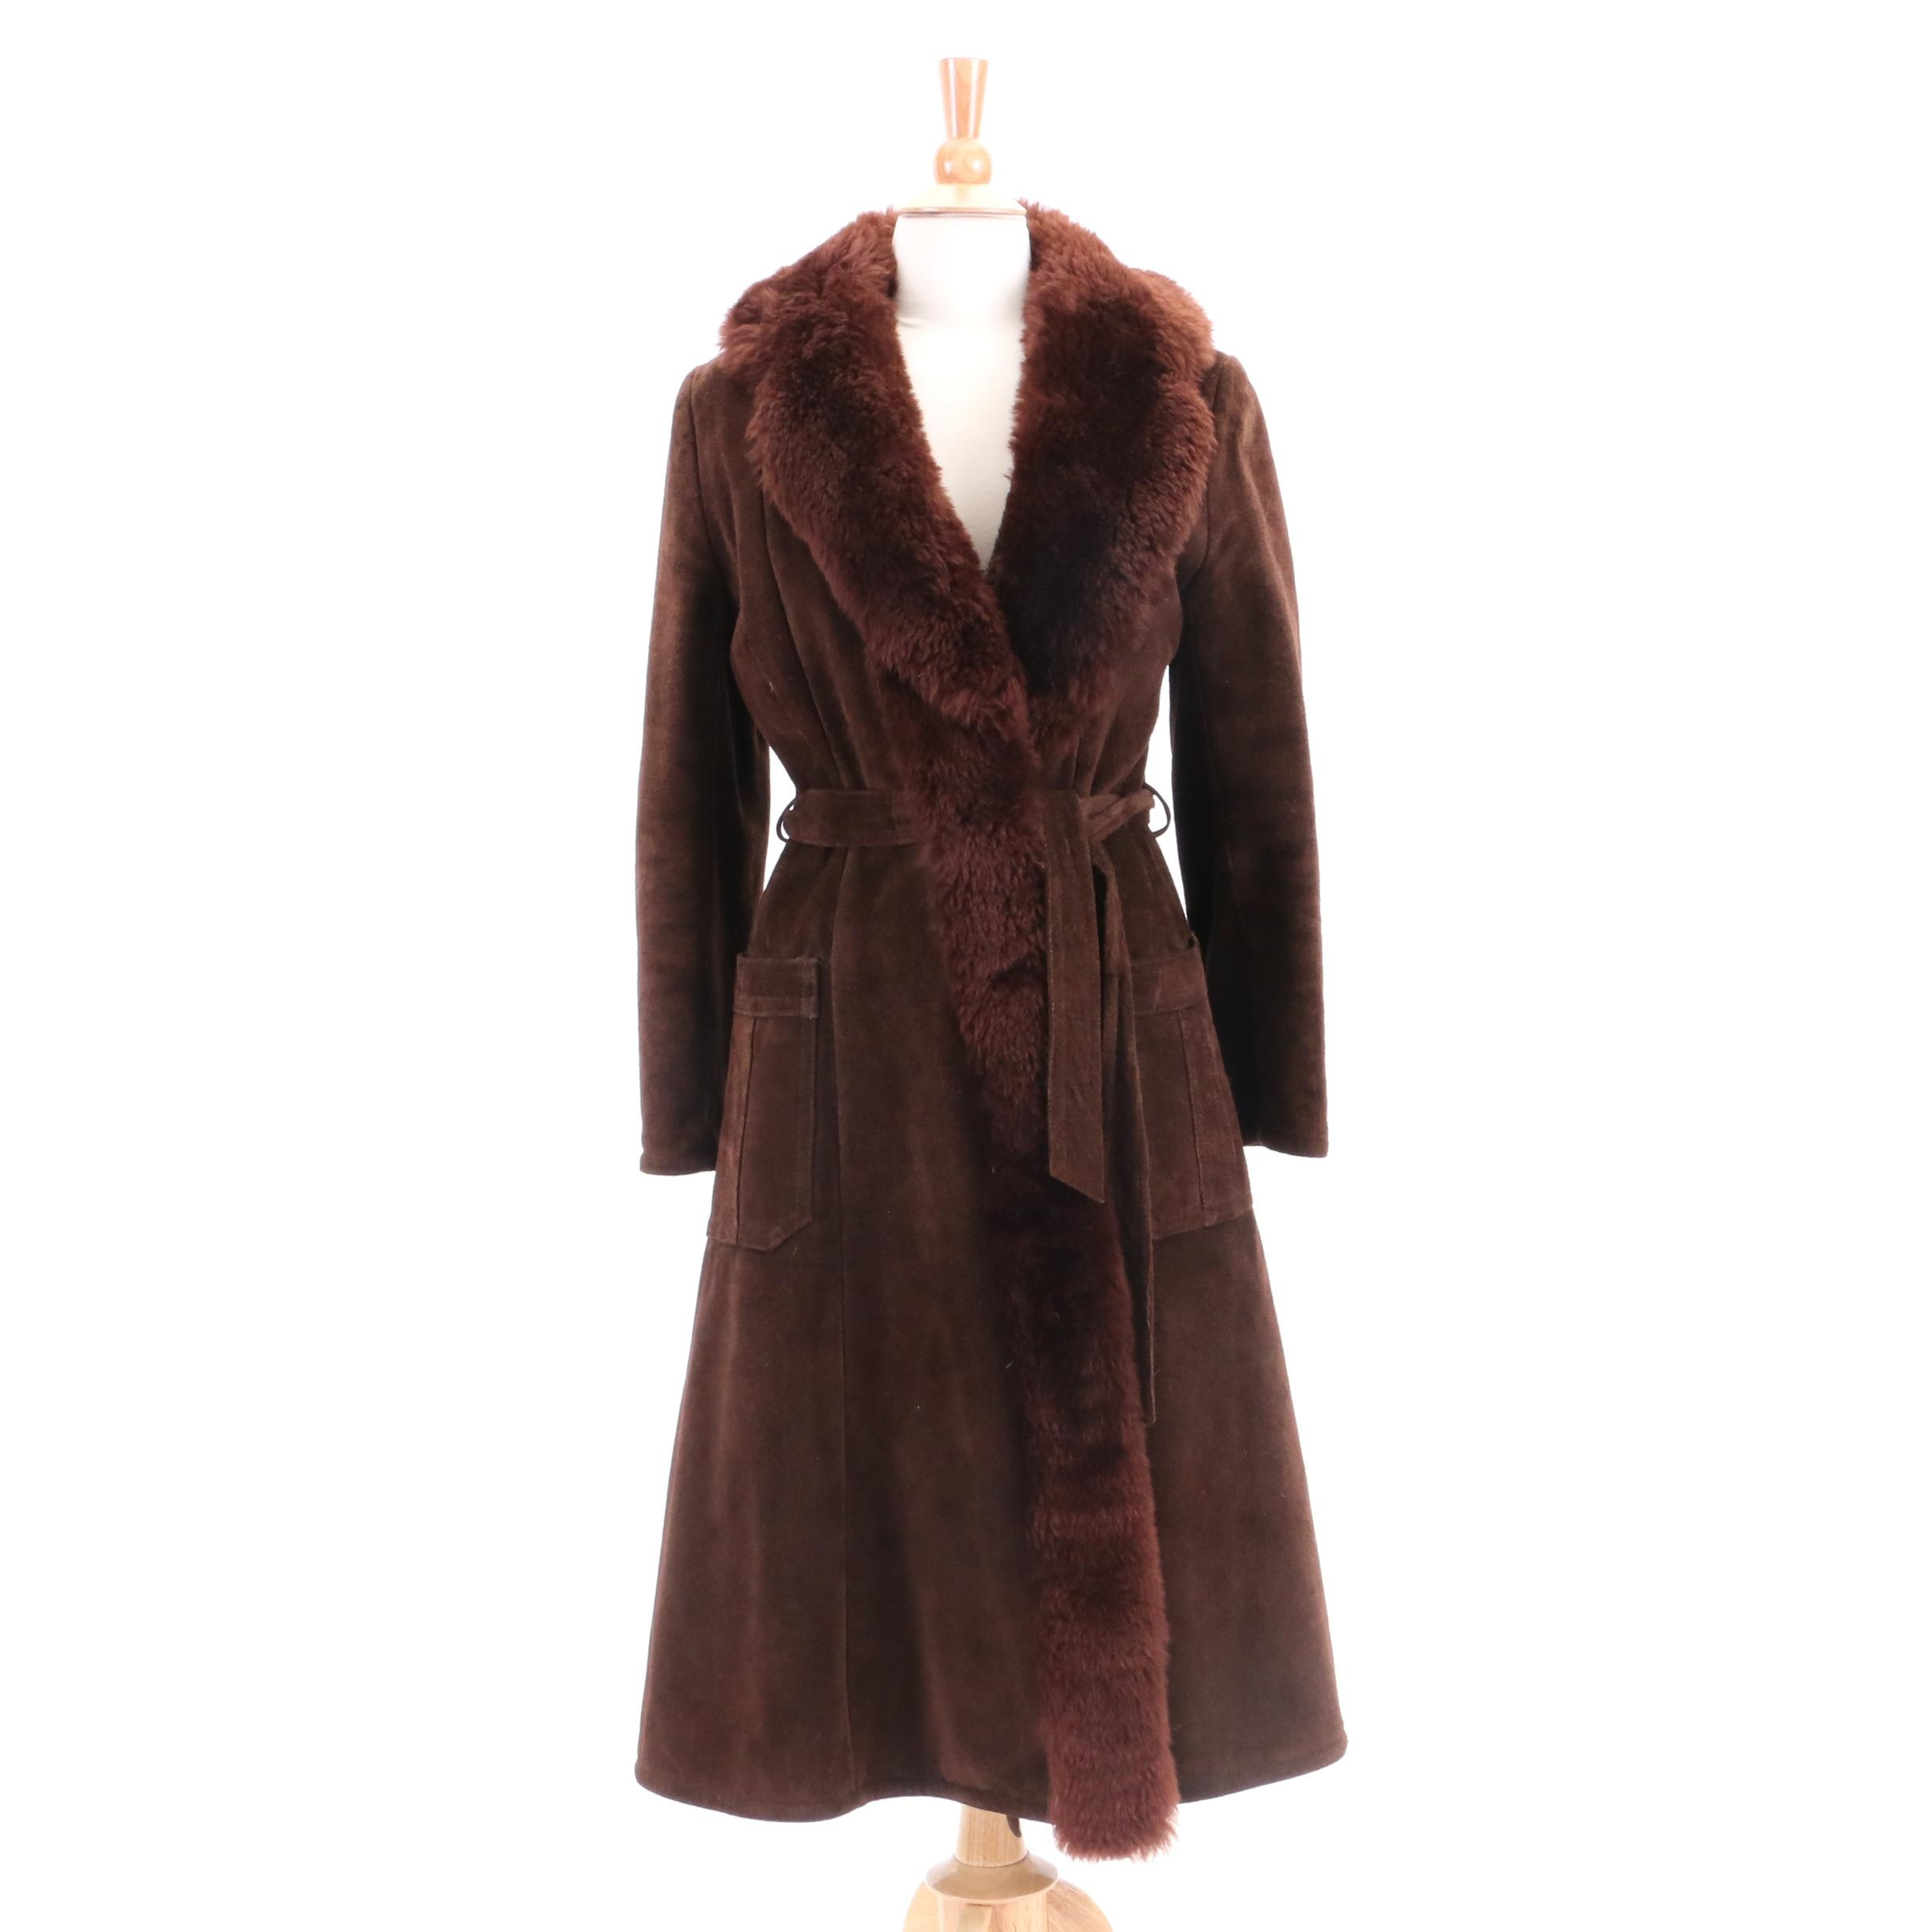 Vintage Saks Fifth Avenue Dyed Sheepskin Suede and Shearling Coat